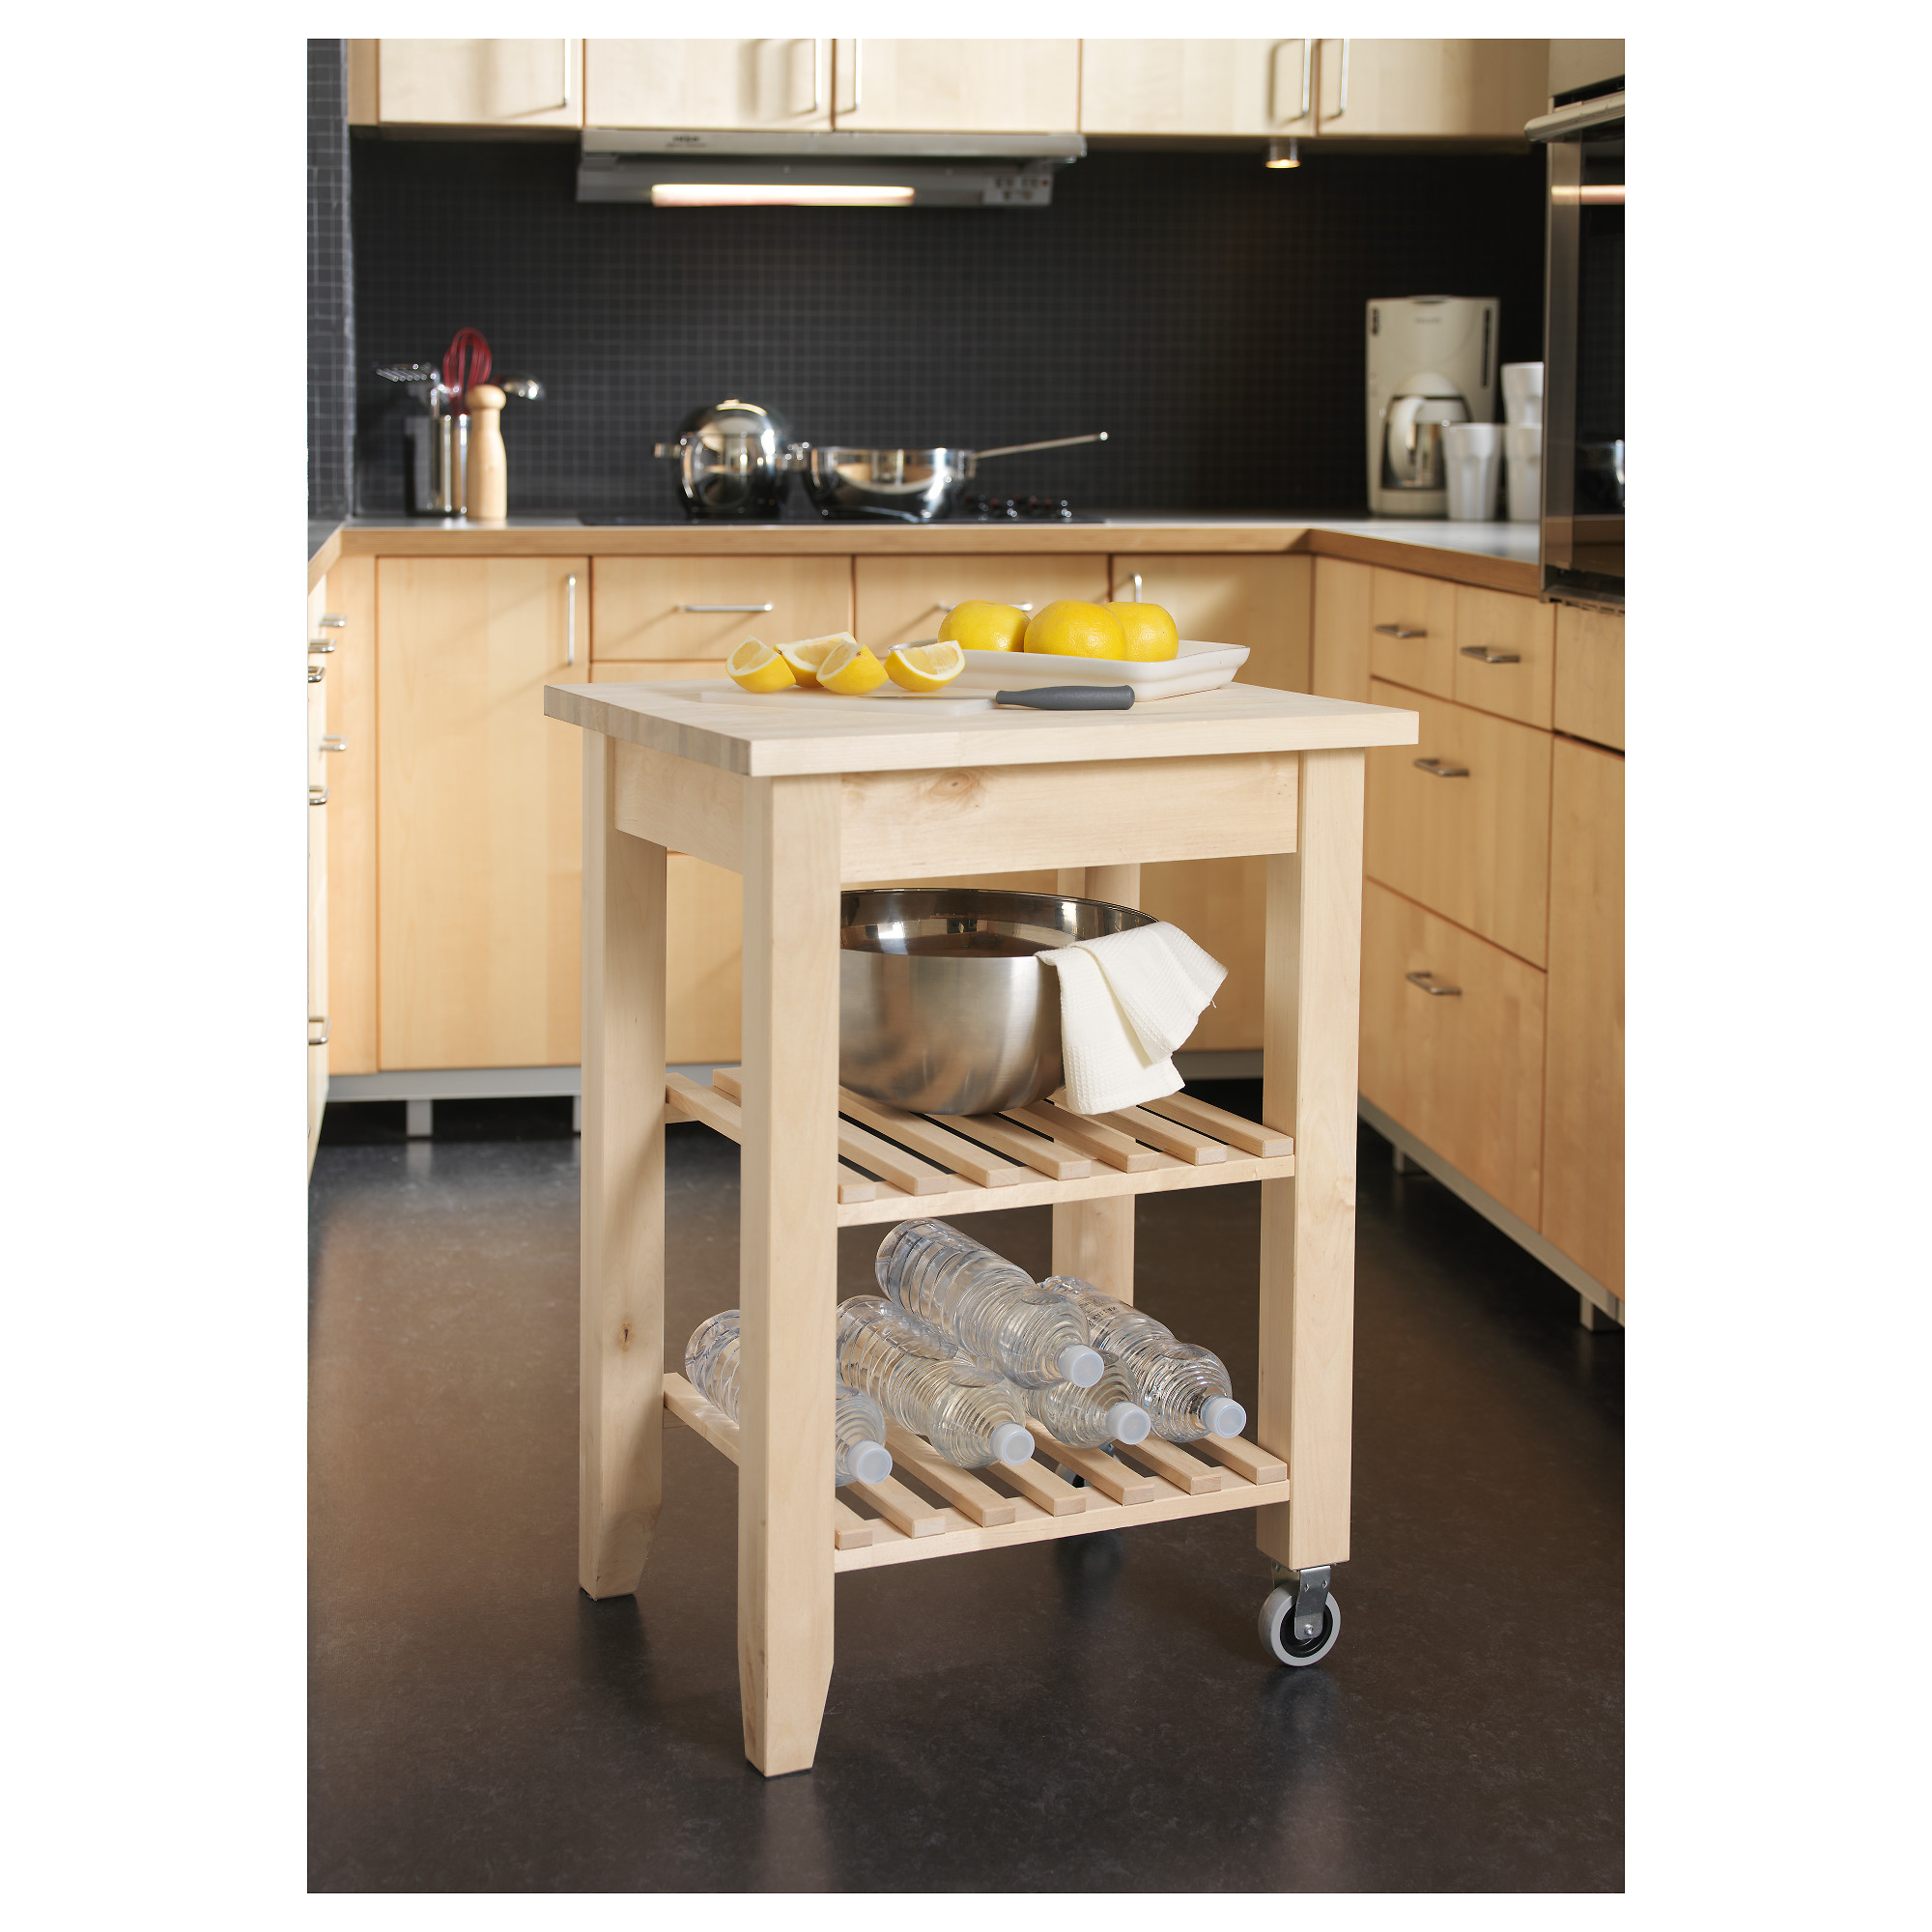 Keukentrolley Ikea : IKEA Butcher Block Kitchen Cart